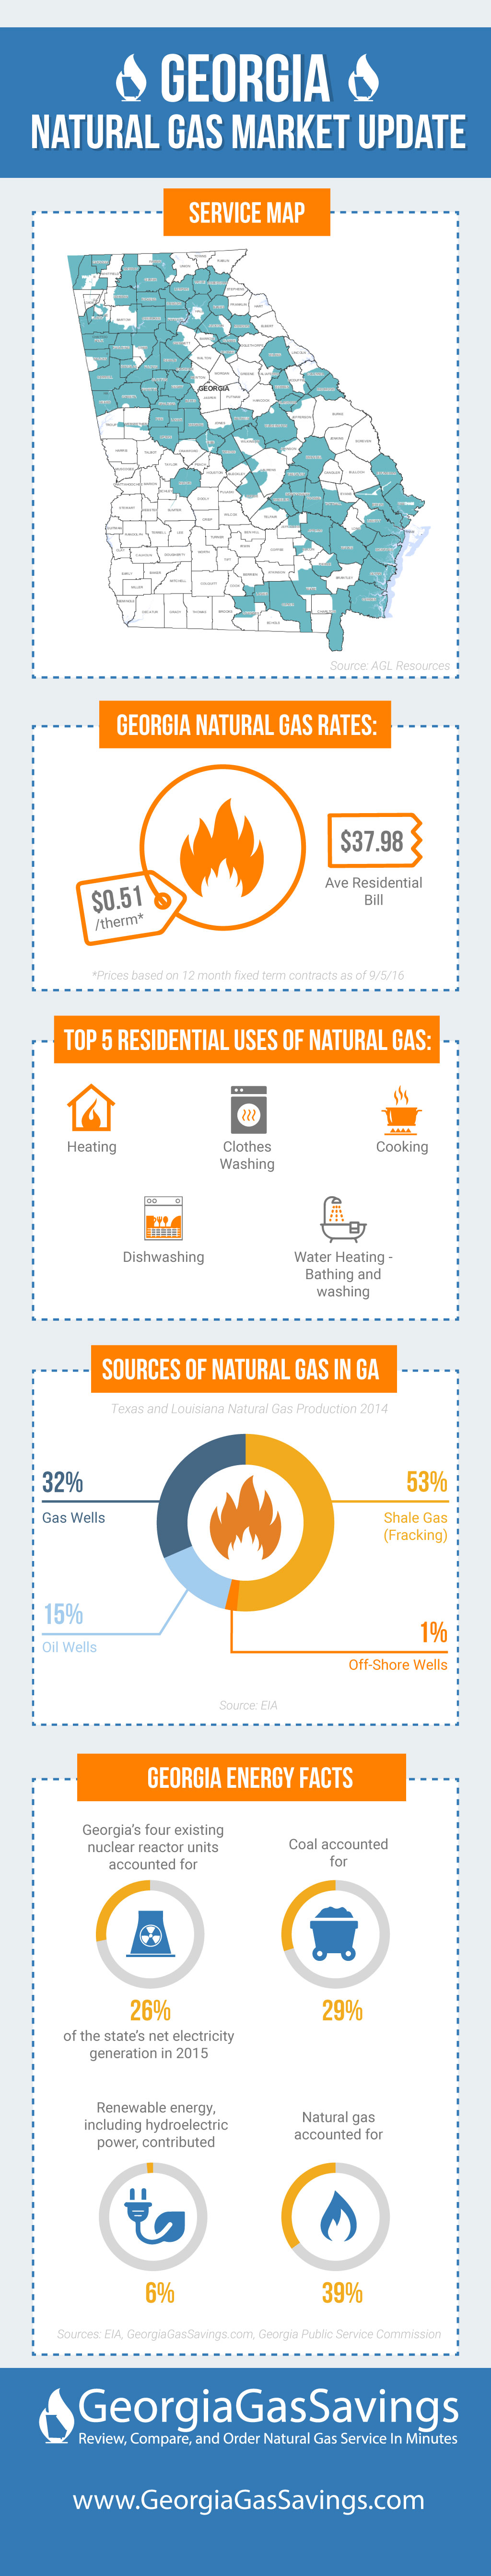 Georgia Natural Gas Rates - Market Update